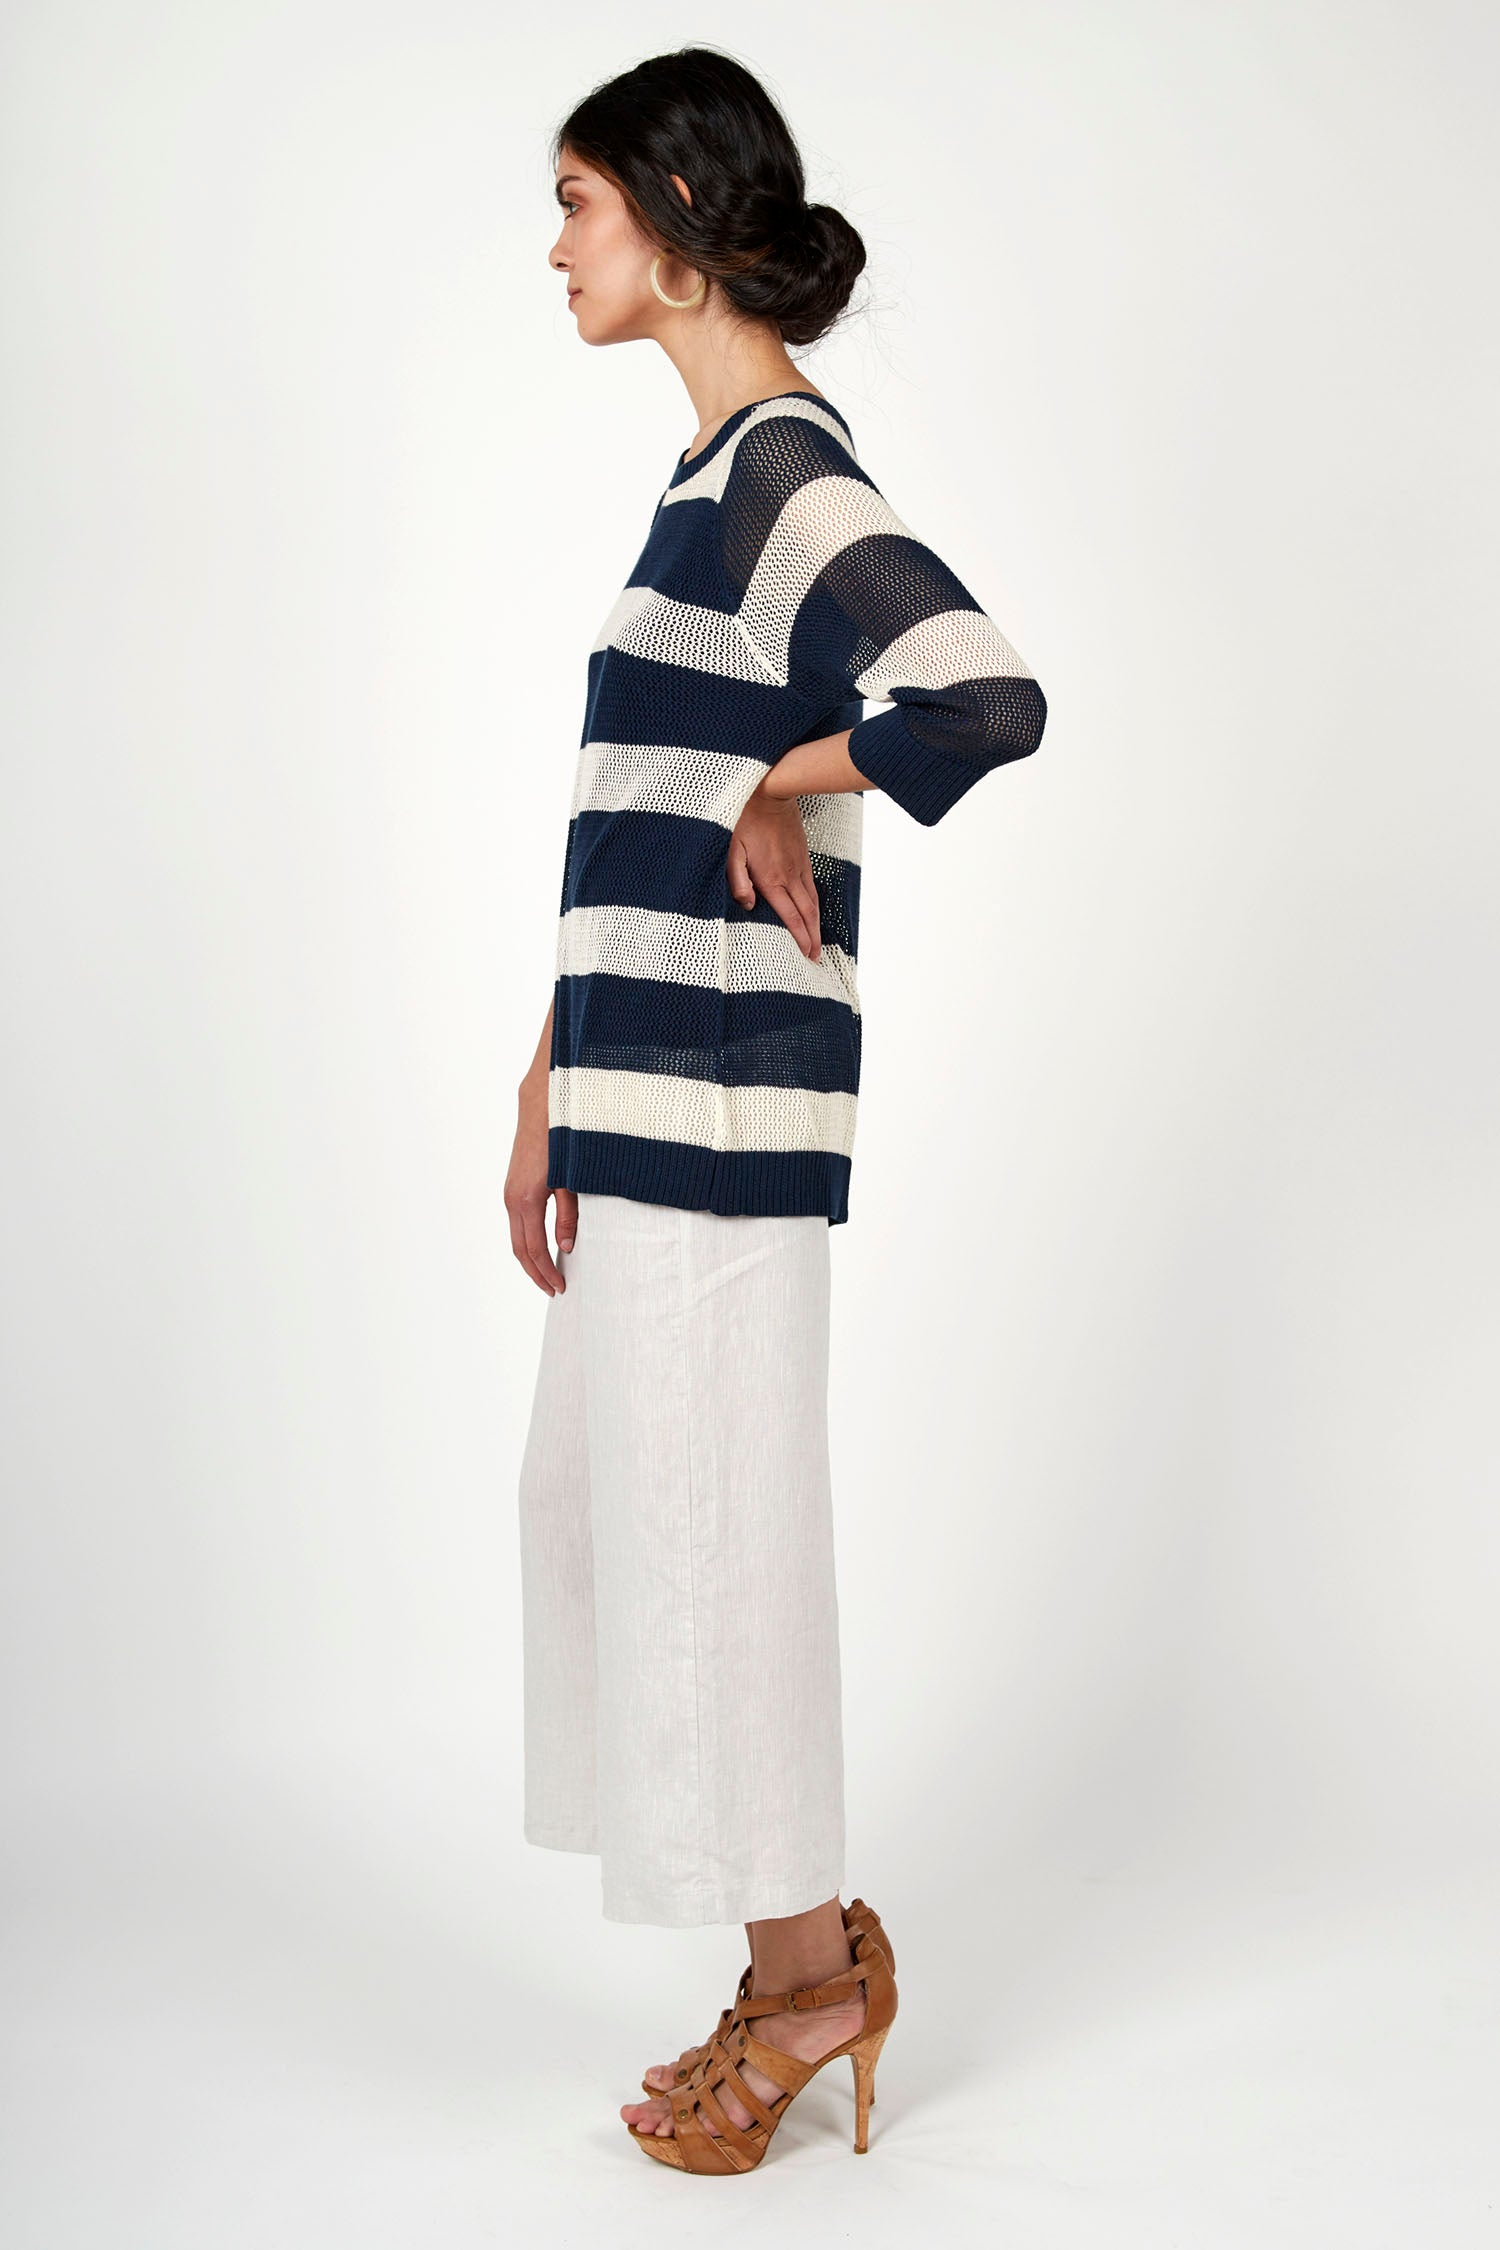 Seaside Stripe Pullover Top - Indigenous